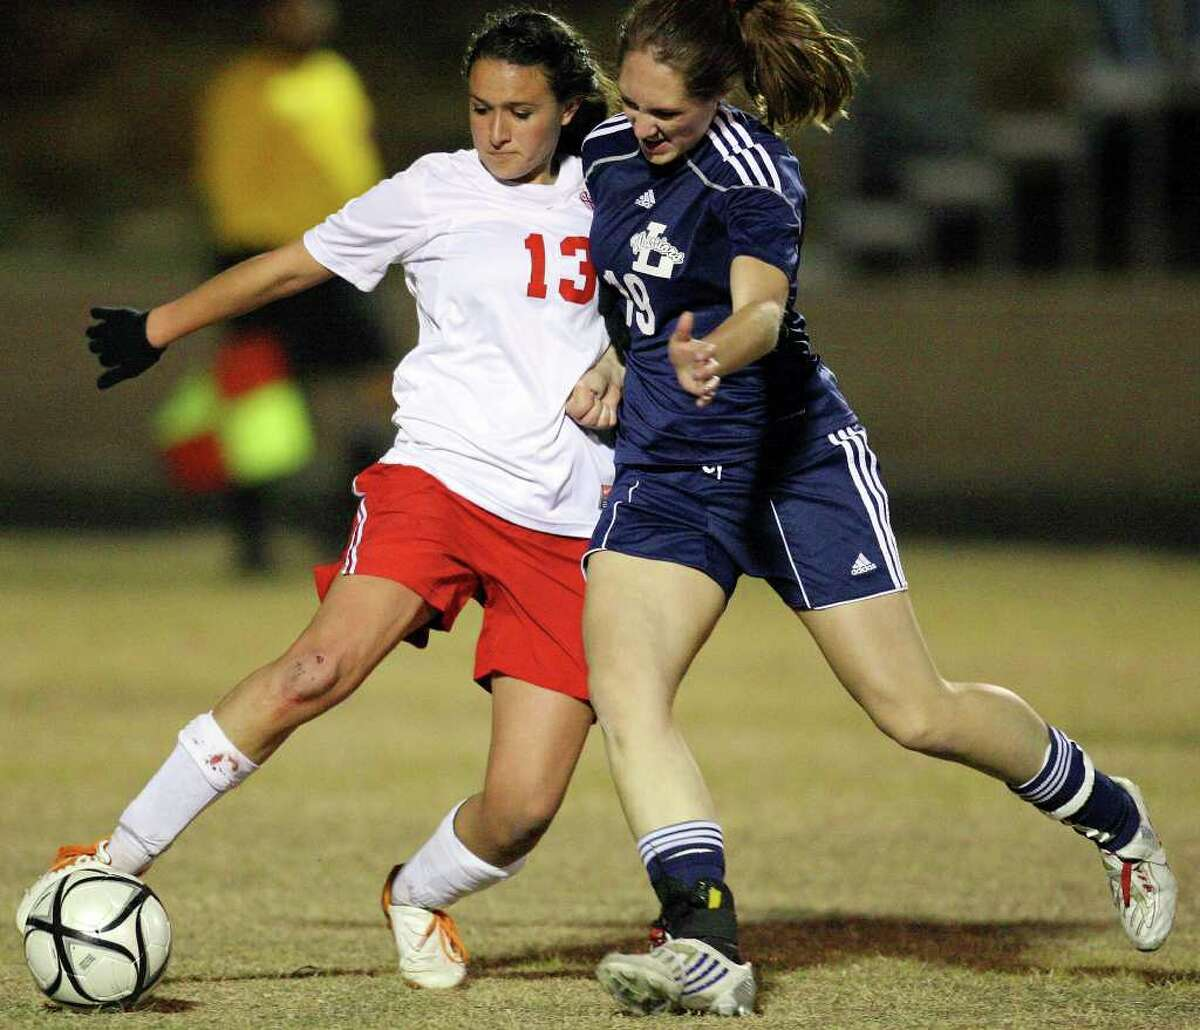 FOR SPORTS - Antonian's Sabrena Fennel (left) and Argyle Liberty Christian's Courtney Butler struggle for control of the ball Friday Feb. 11, 2011 at Antonian high school. Antonian won 2-1 in overtime. (PHOTO BY EDWARD A. ORNELAS/eaornelas@express-news.net)